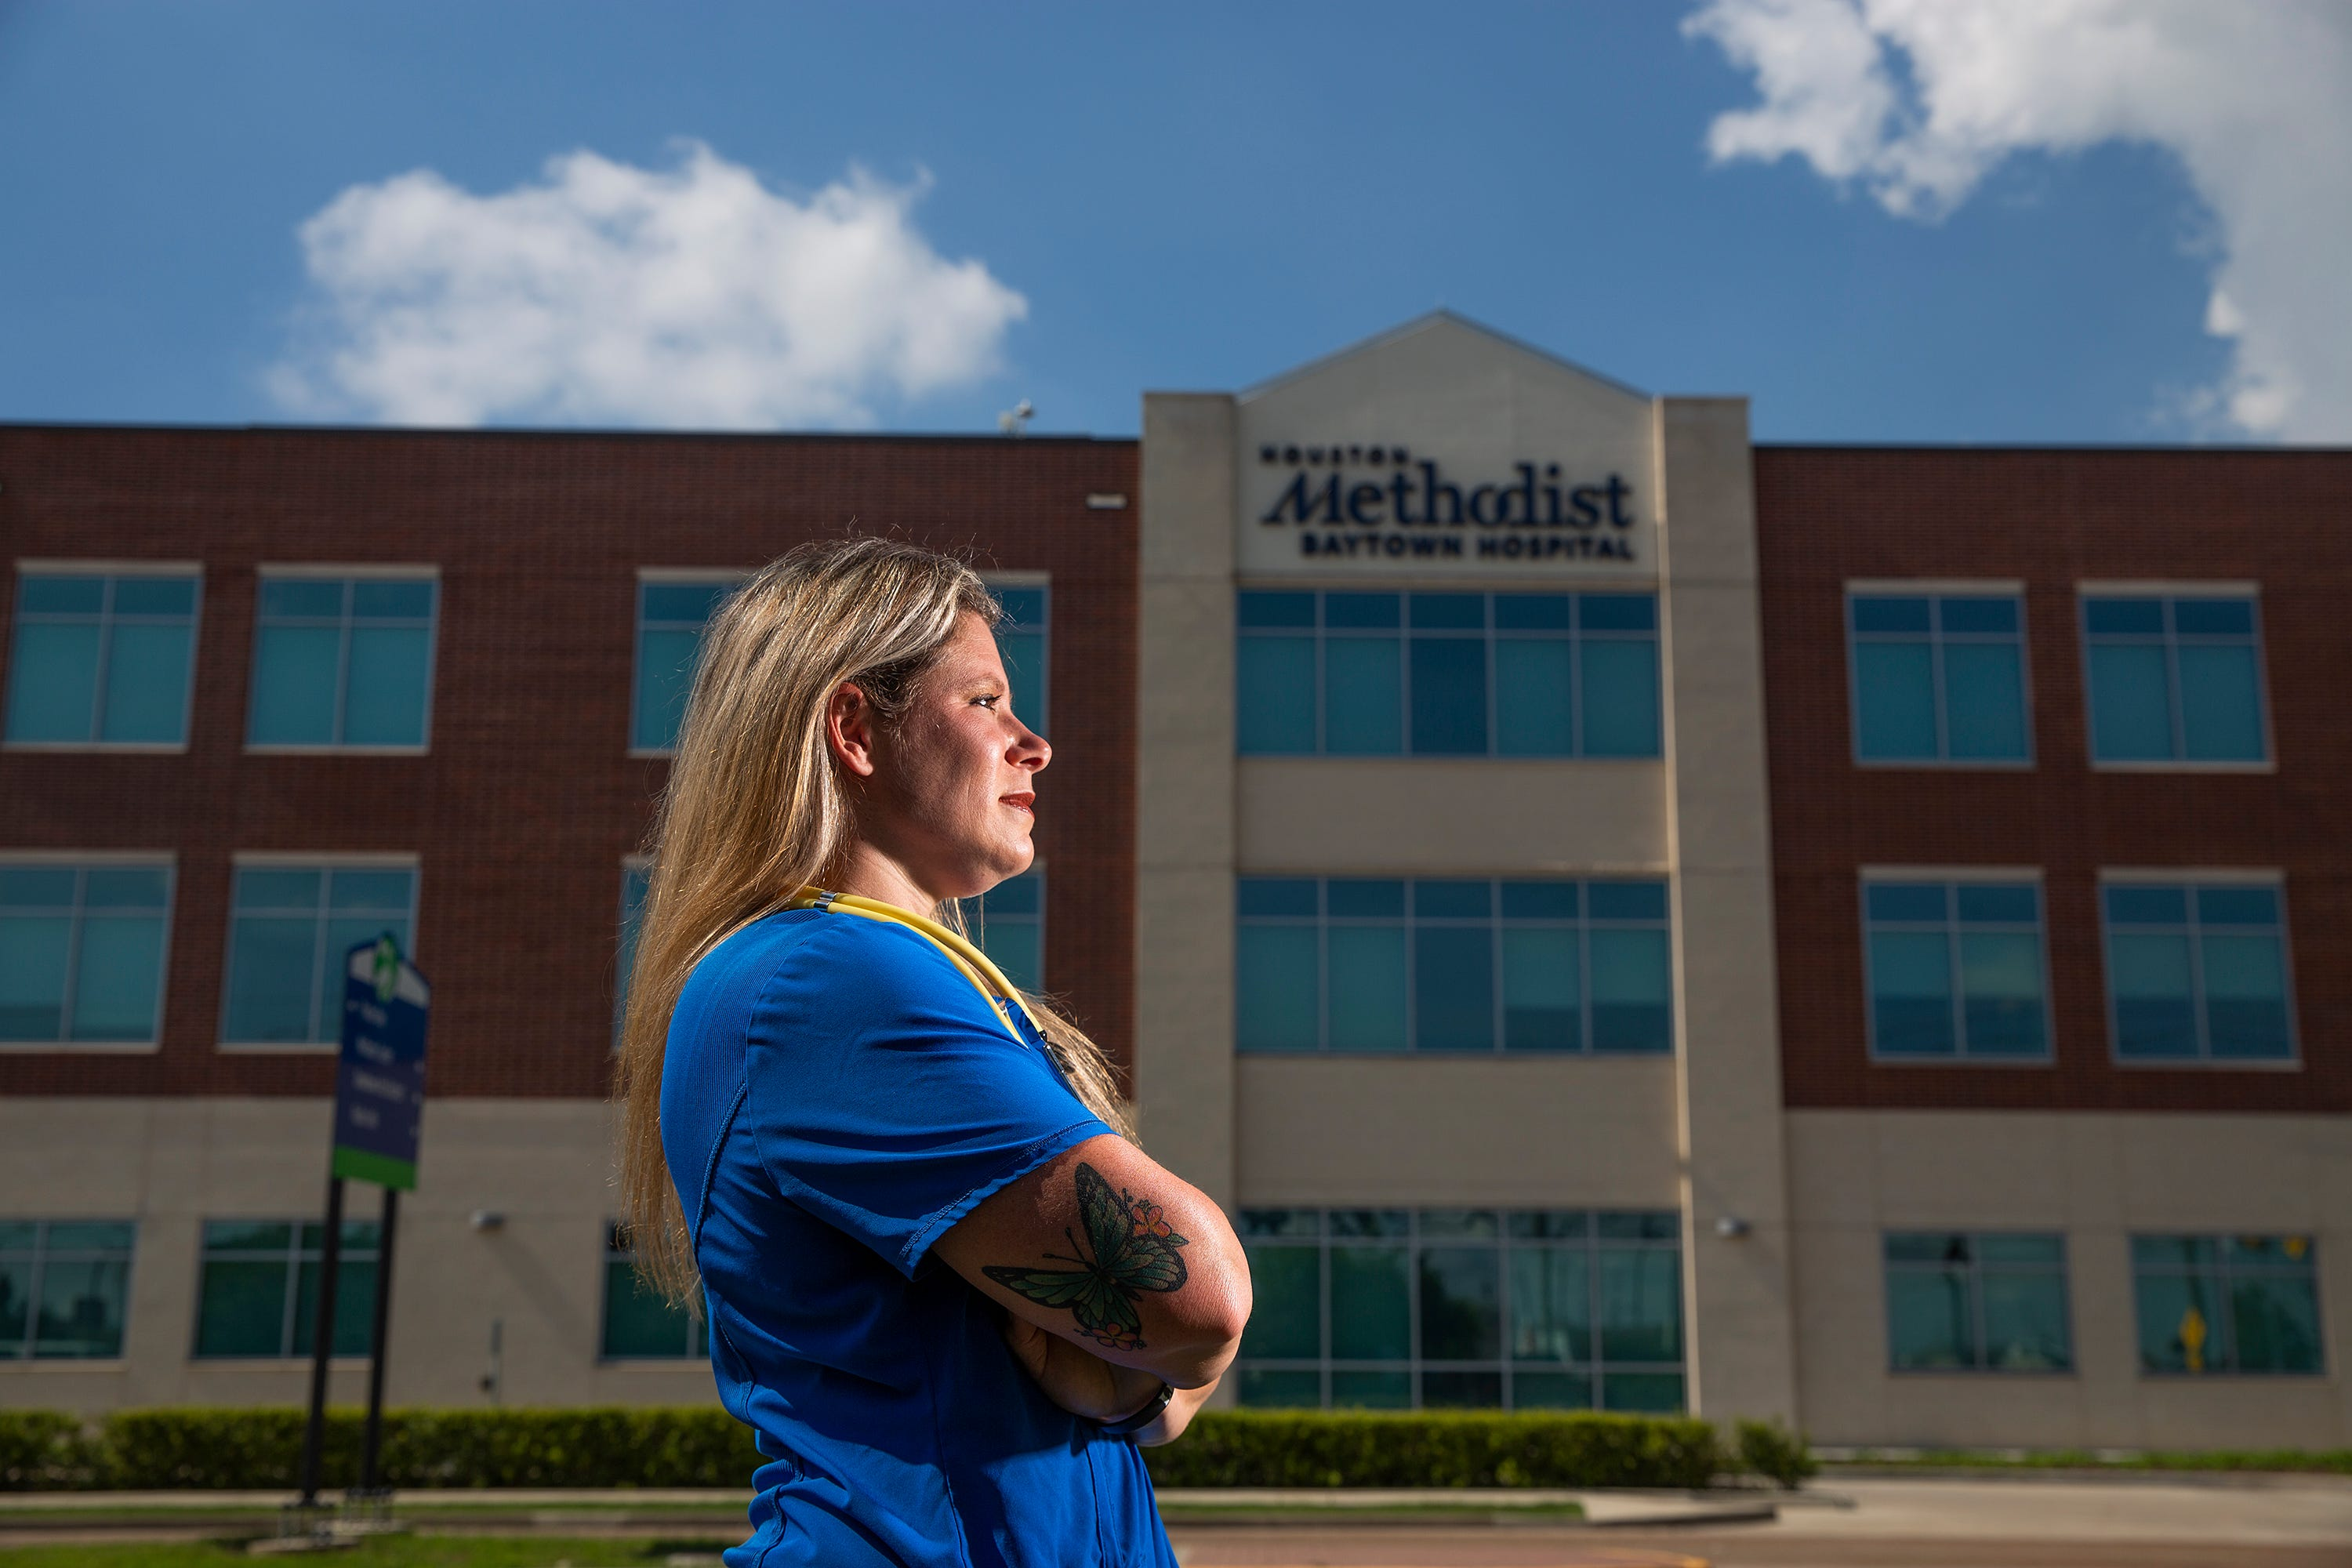 Jennifer Bridges is a nurse who is leading a campaign and a lawsuit against her employer Houston Methodist Hospital, which is mandating vaccines for workers.